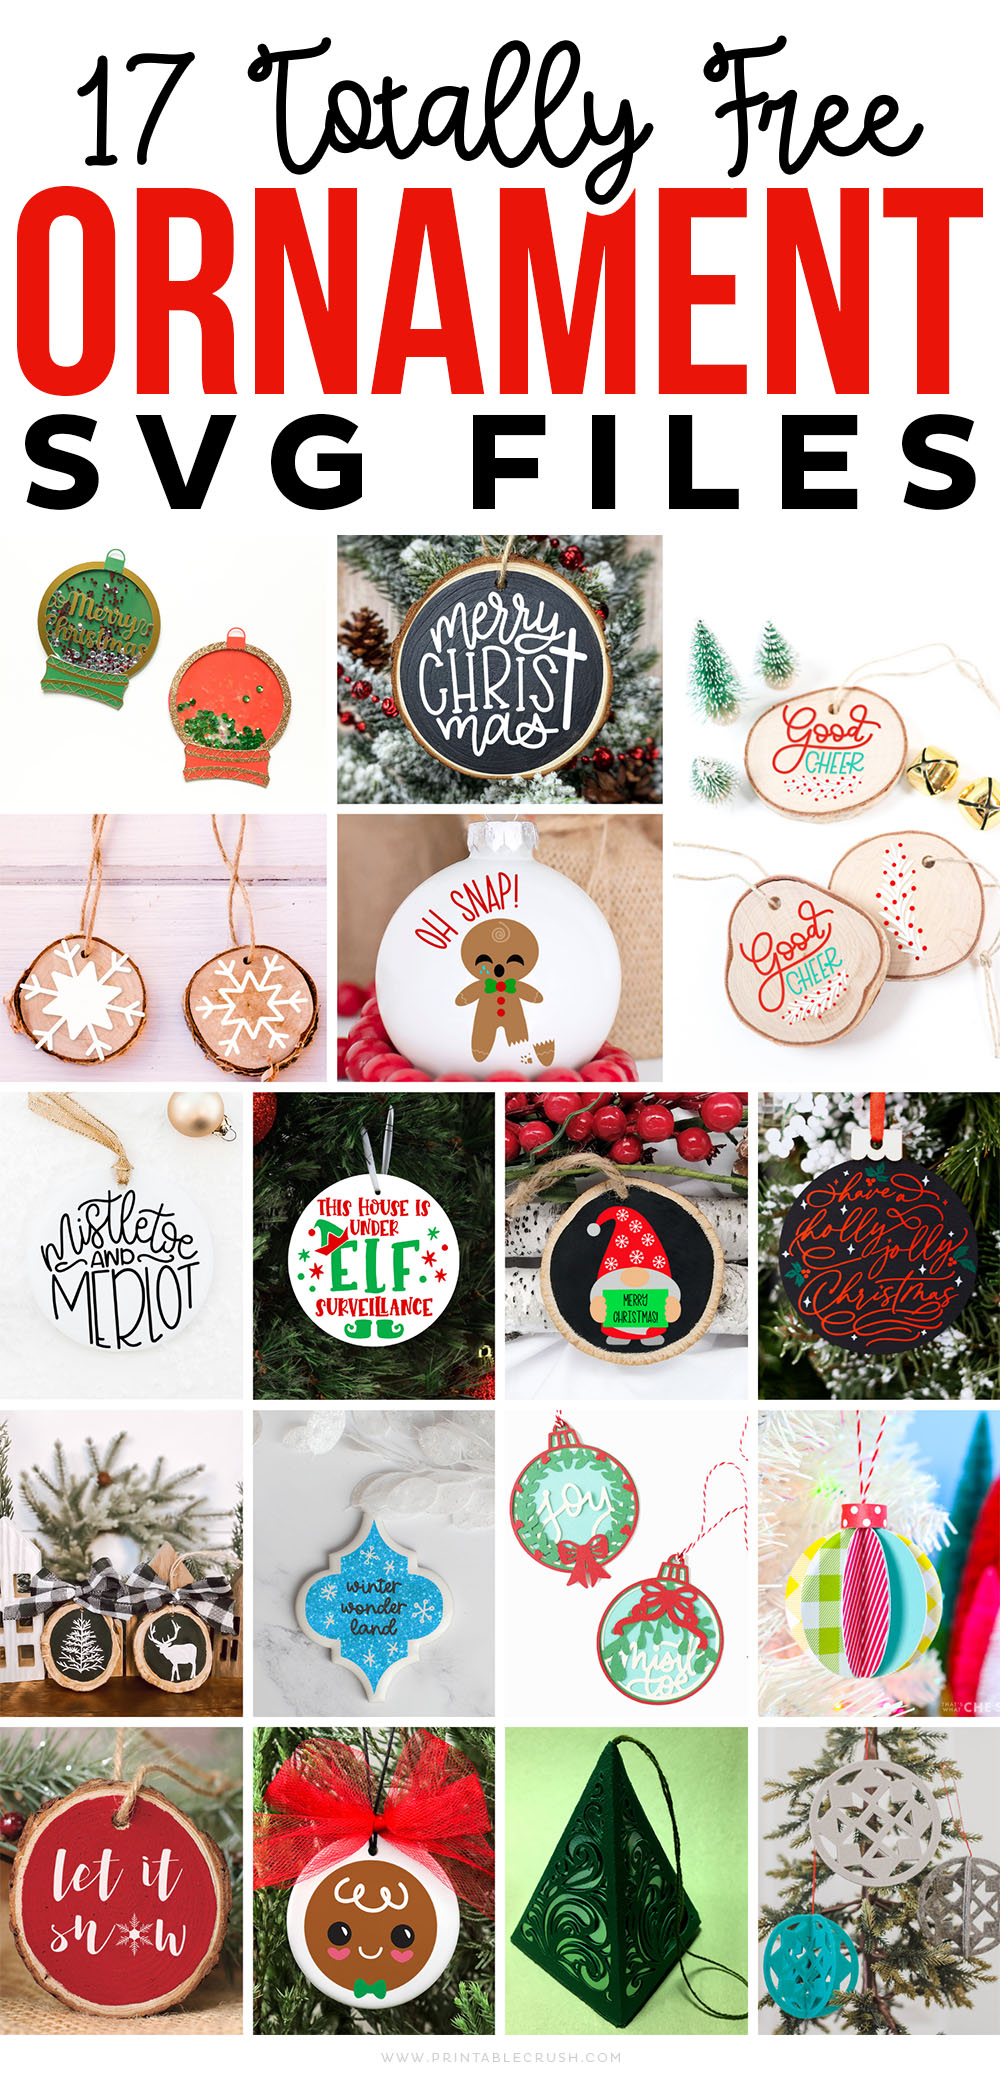 17 Totally Free Ornament SVG Files - Free Holiday Ornament SVG Files - Free Ornament Files - DIY Christmas Ornaments - Printable Crush